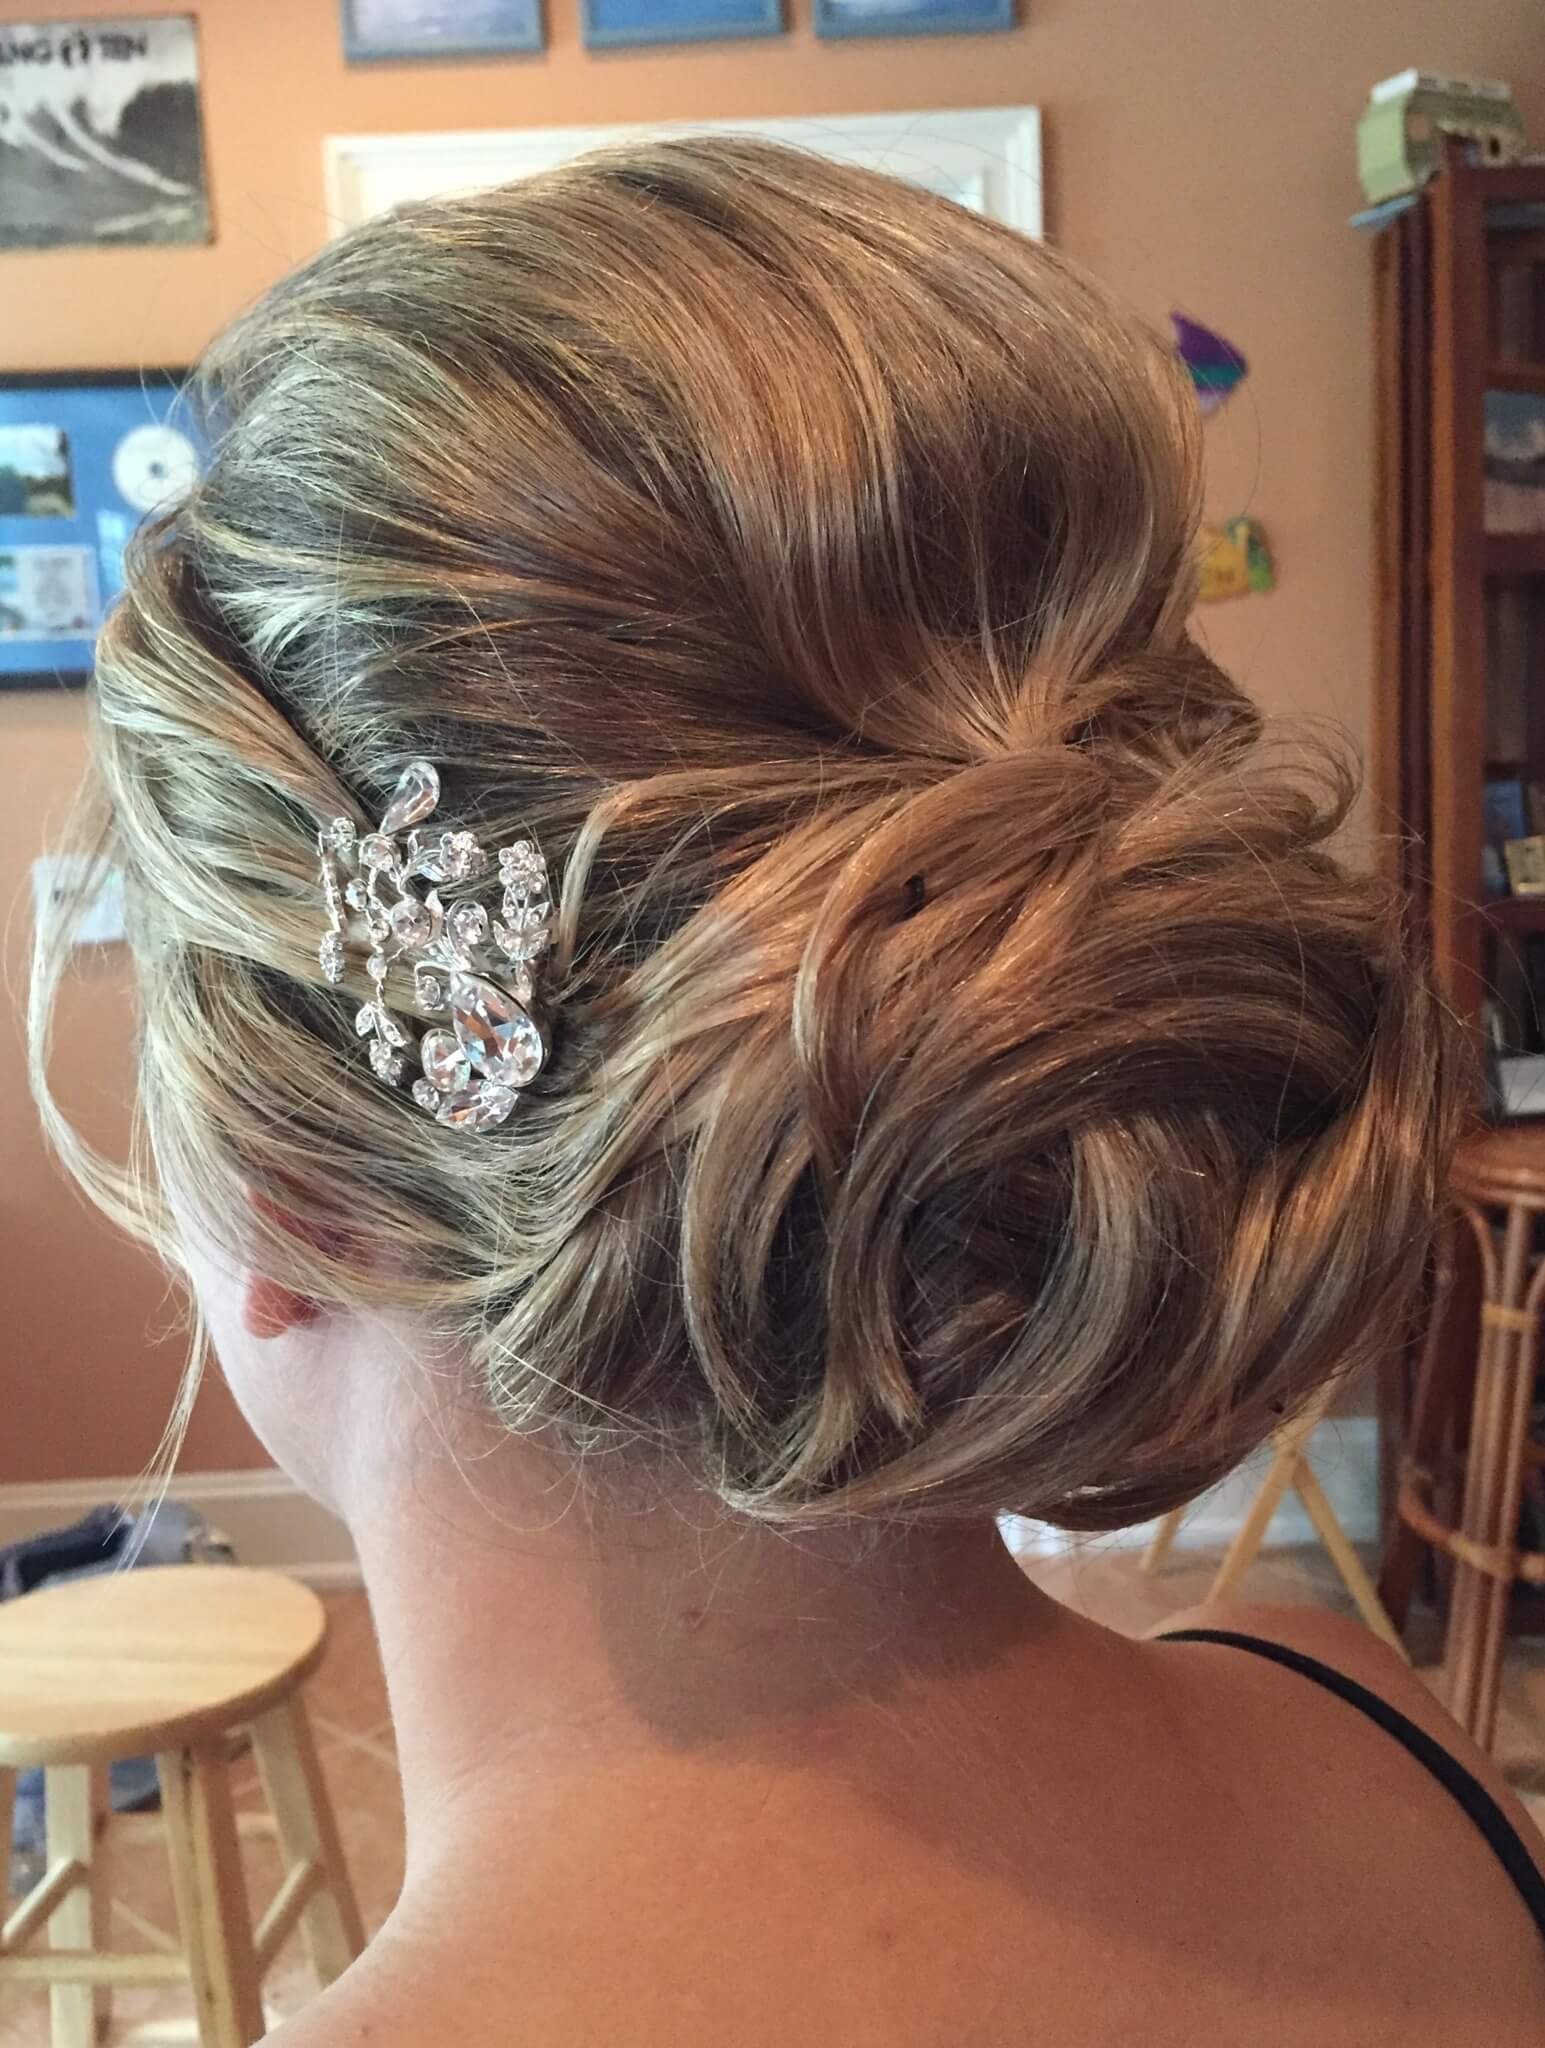 hair-salon-jacksonville-wedding-hairstyles-84